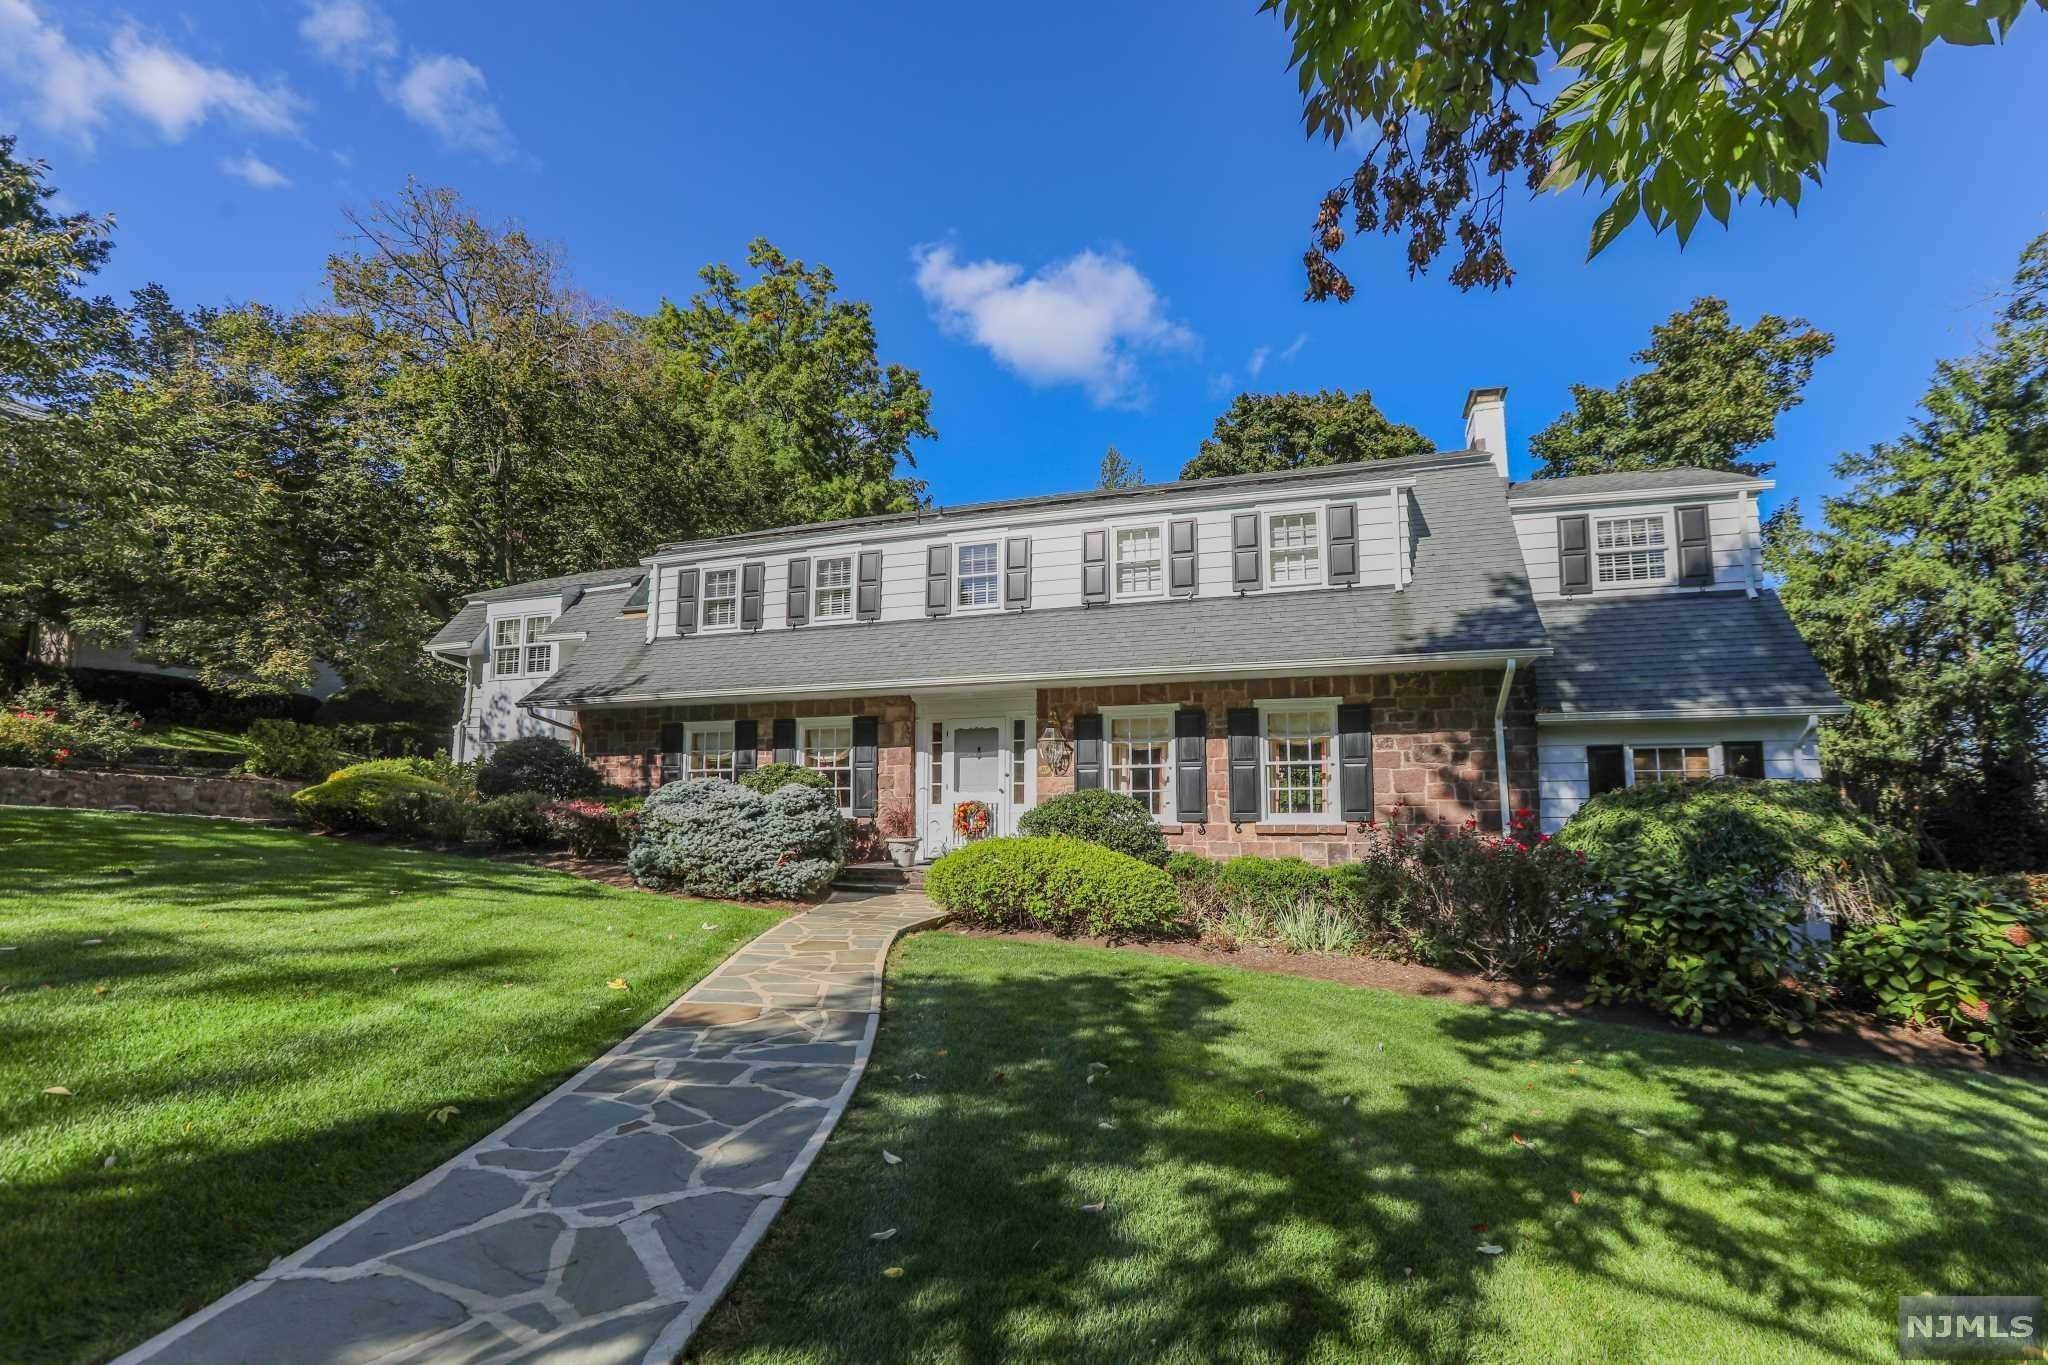 Single Family Home for Sale at 317 Greenway Road Ridgewood, New Jersey, 07450 United States